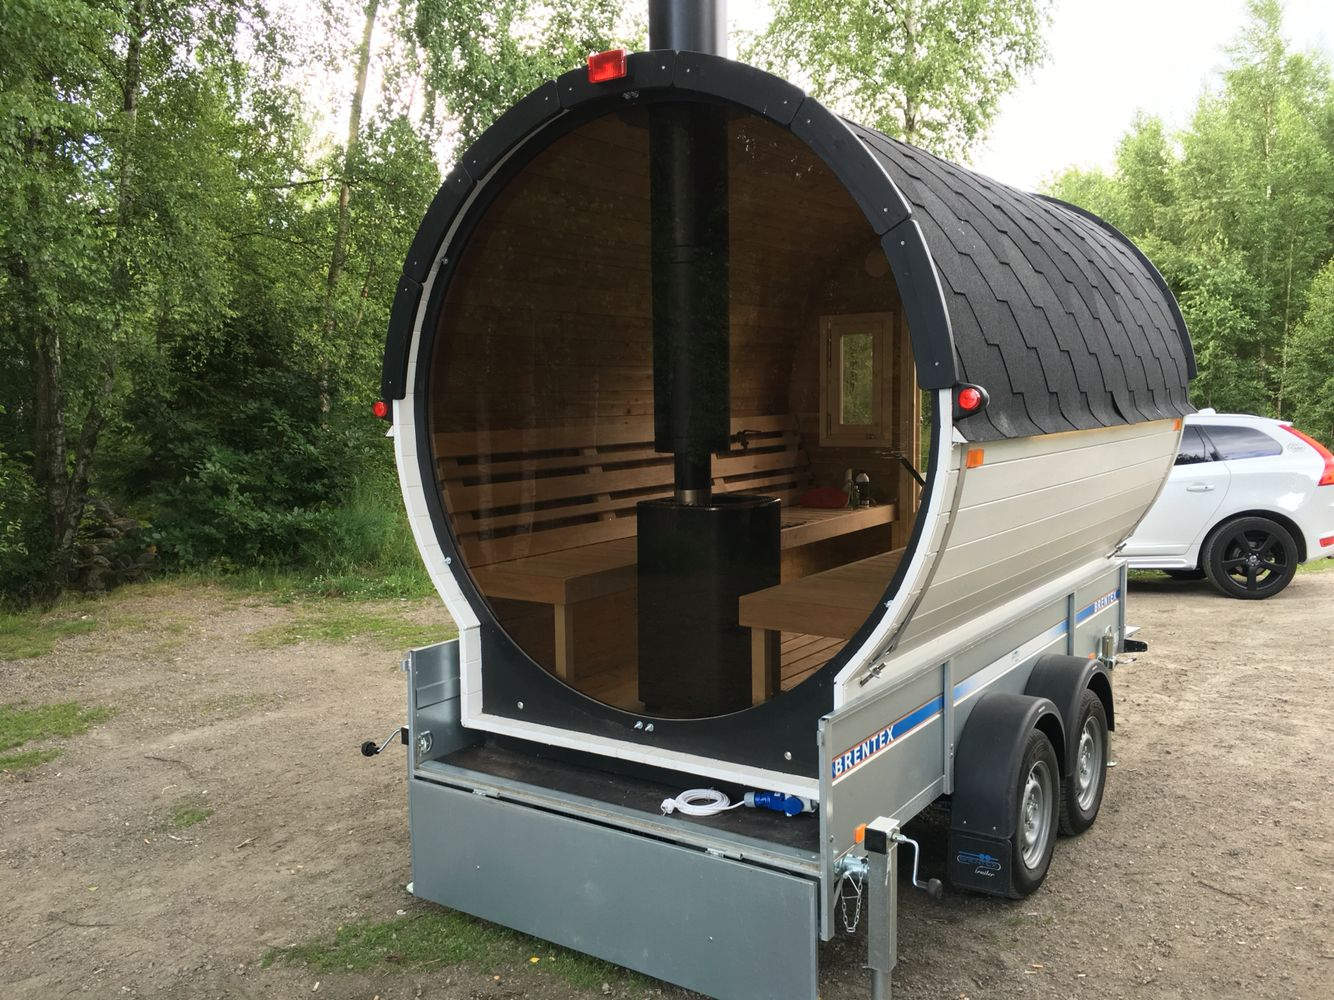 Barrel Sauna With Glass Wall Permanently Built On Trailer